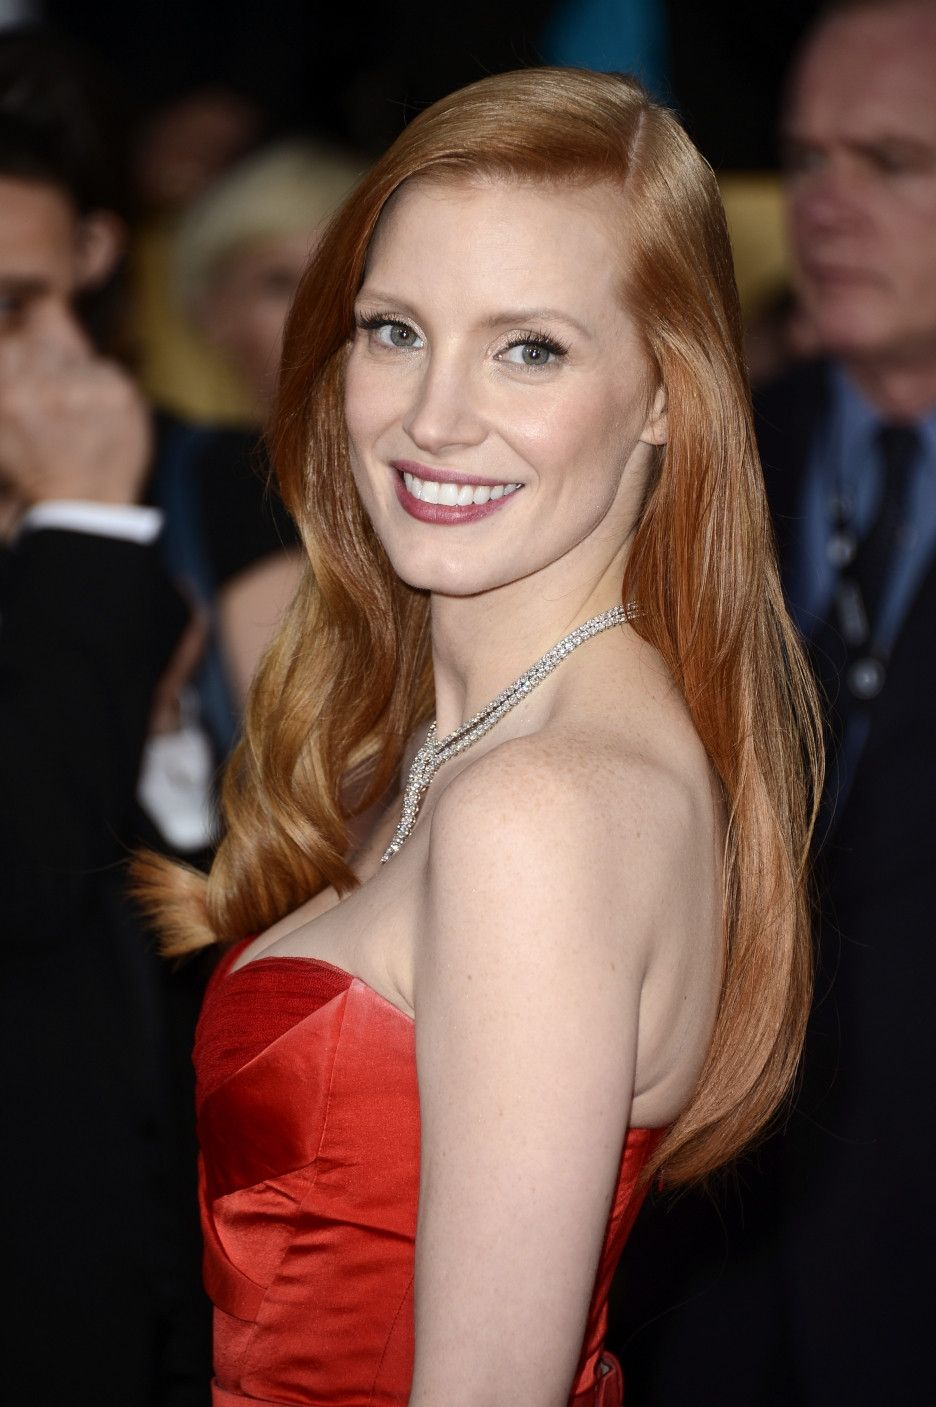 The Gorgeous Jessica Chastain Hair Color Formulas Redhead Hairstyles Shades Of Red Hair